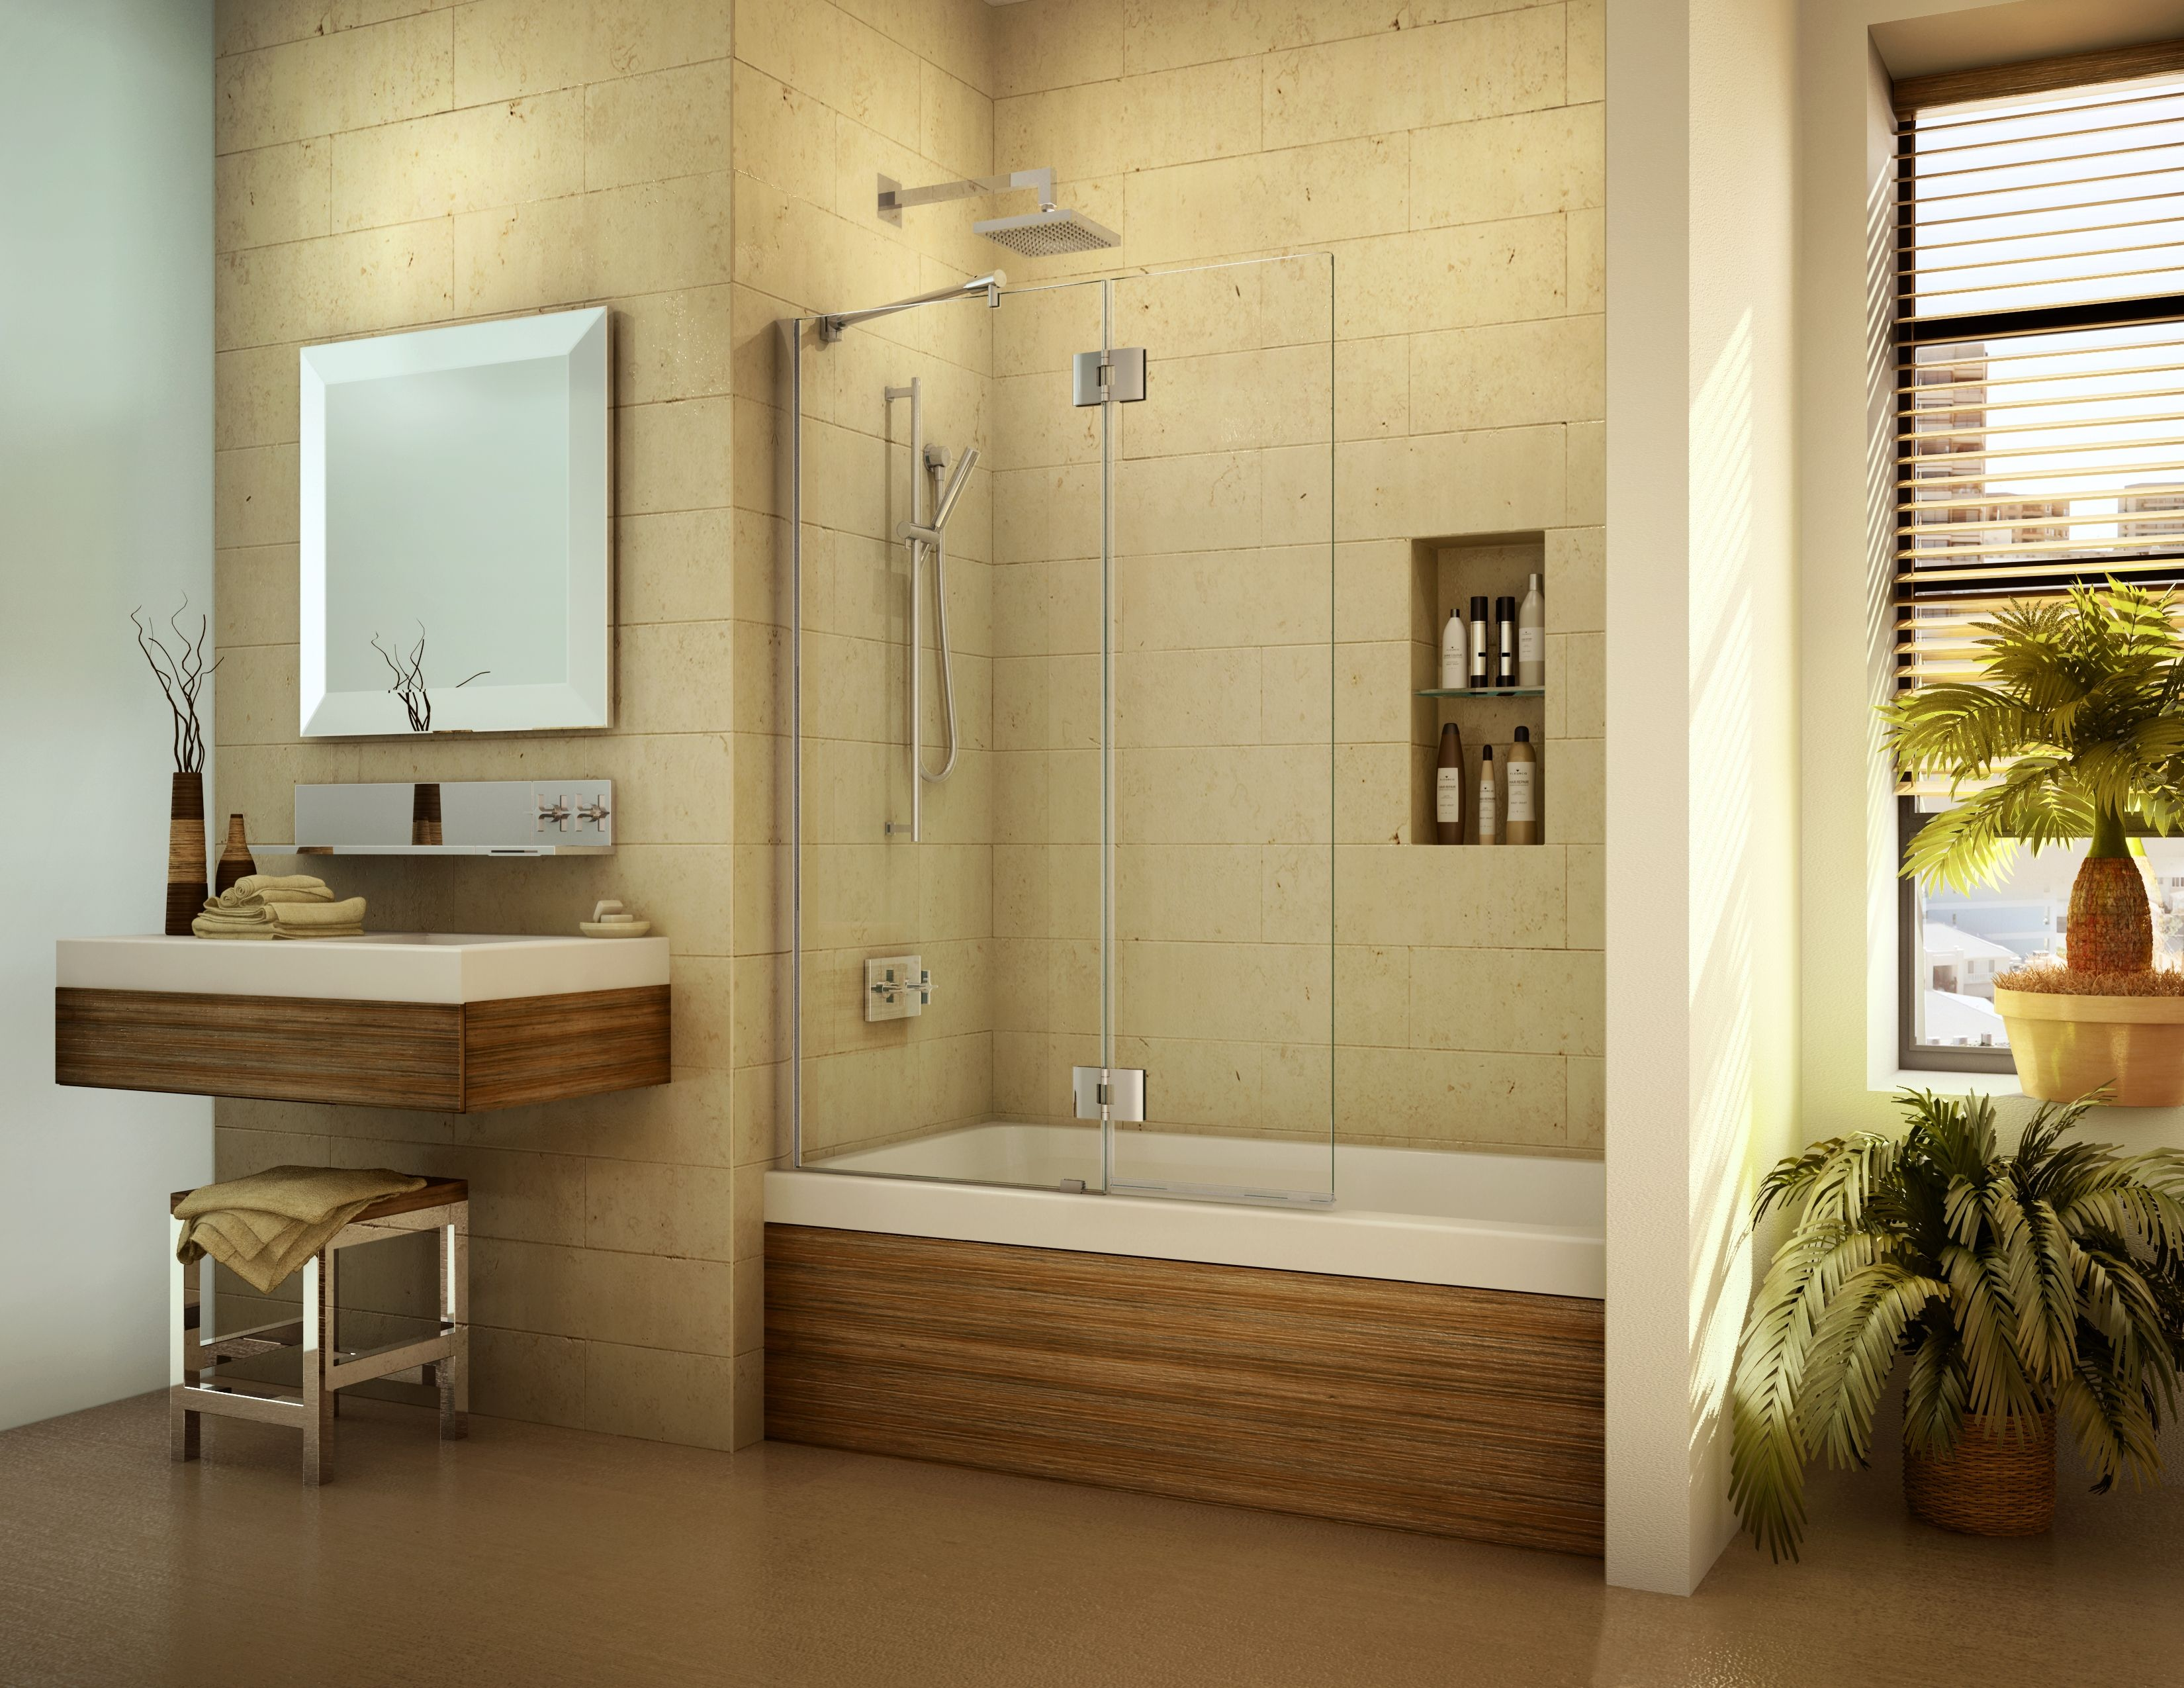 How to Compare a Bath Tub Shower Door, Bath Screen or Shower Curtain